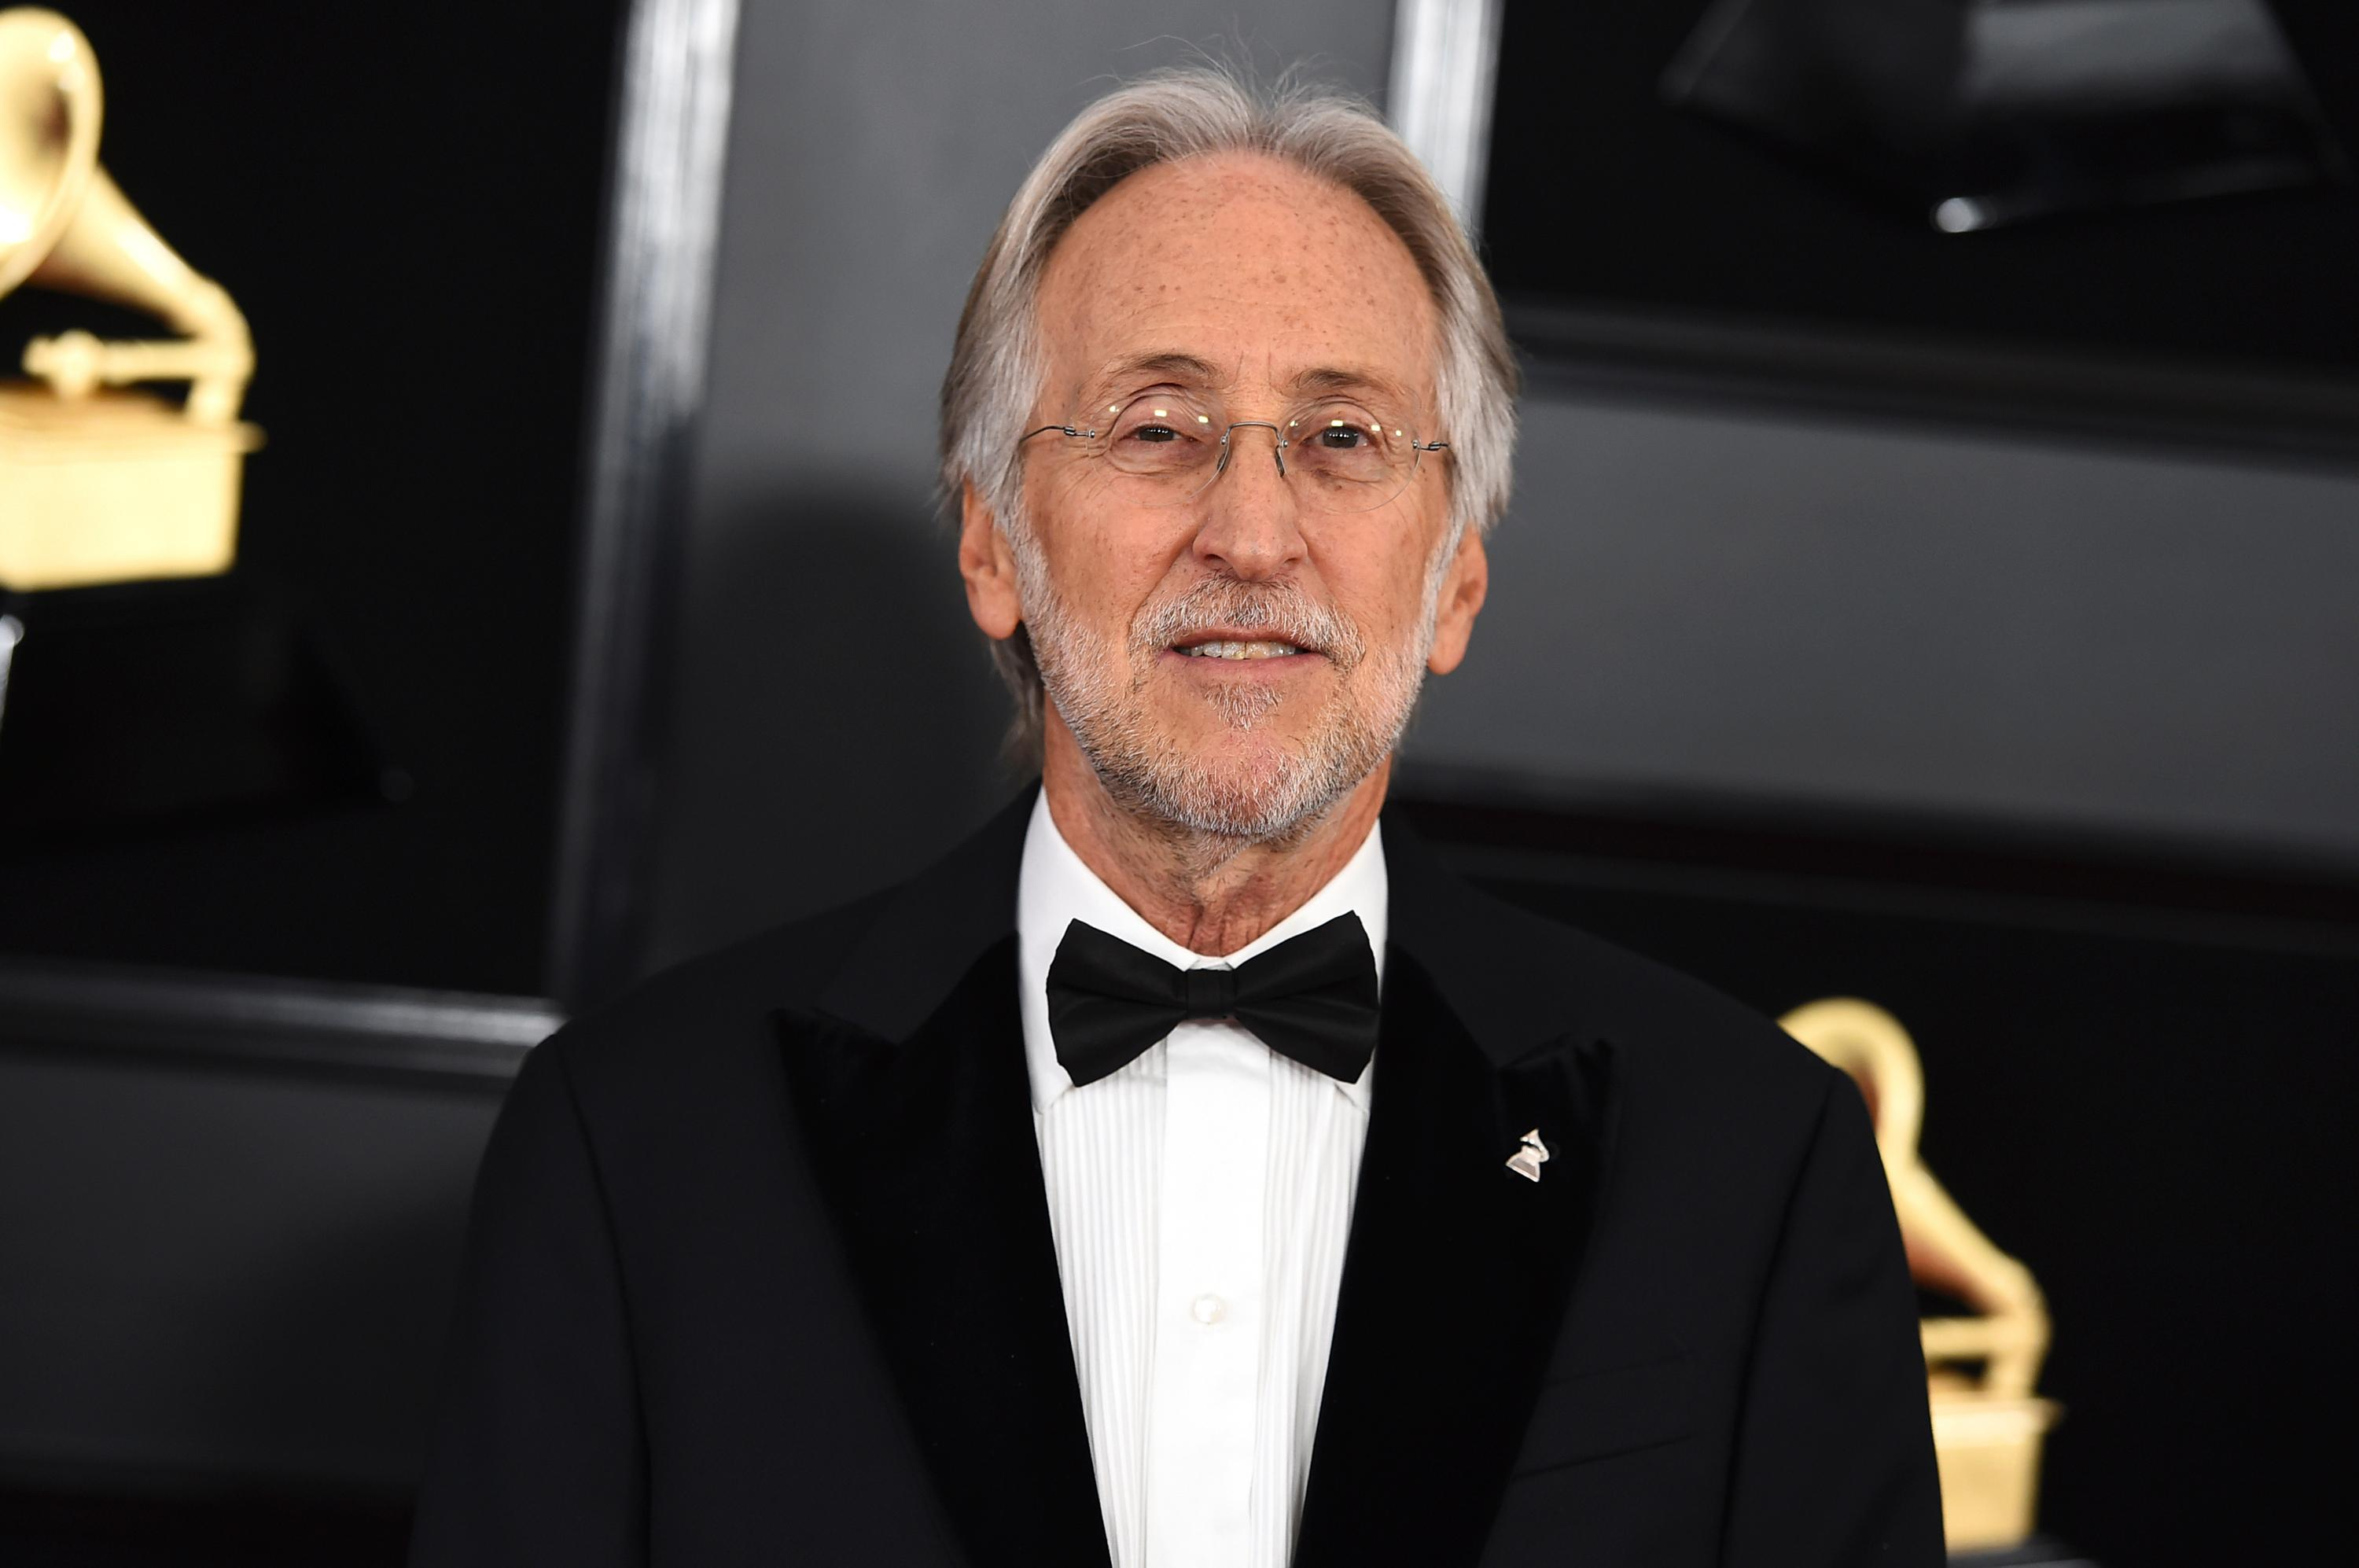 "FILE - This Feb. 10, 2019 file photo shows then President and CEO of The Recording Academy Neil Portnow at the 61st annual Grammy Awards in Los Angeles. Portnow says a rape allegation against him aired in a complaint against the Recording Academy by his successor is ""false and outrageous."" Portnow released a statement saying the academy during his tenure had conducted a thorough and independent investigation and he was ""completely exonerated."" (Photo by Jordan Strauss/Invision/AP, File)"